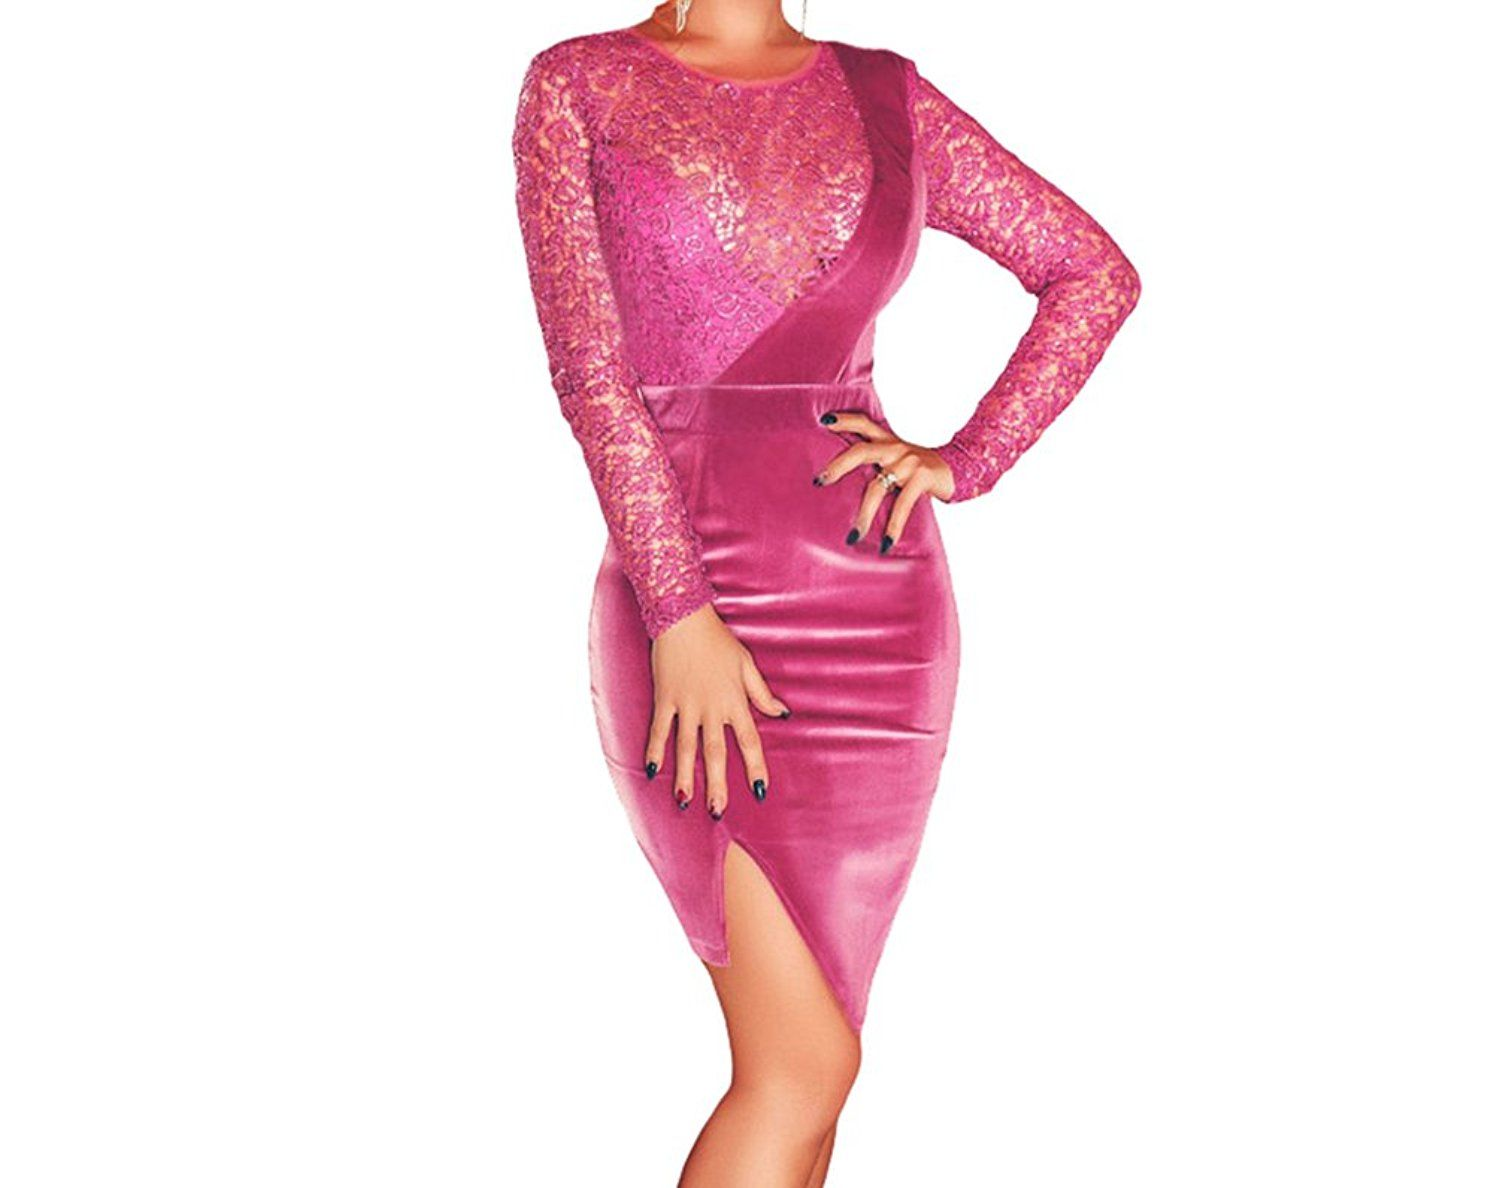 Pin by dorothy newman on womens clothing pinterest clubbing dresses